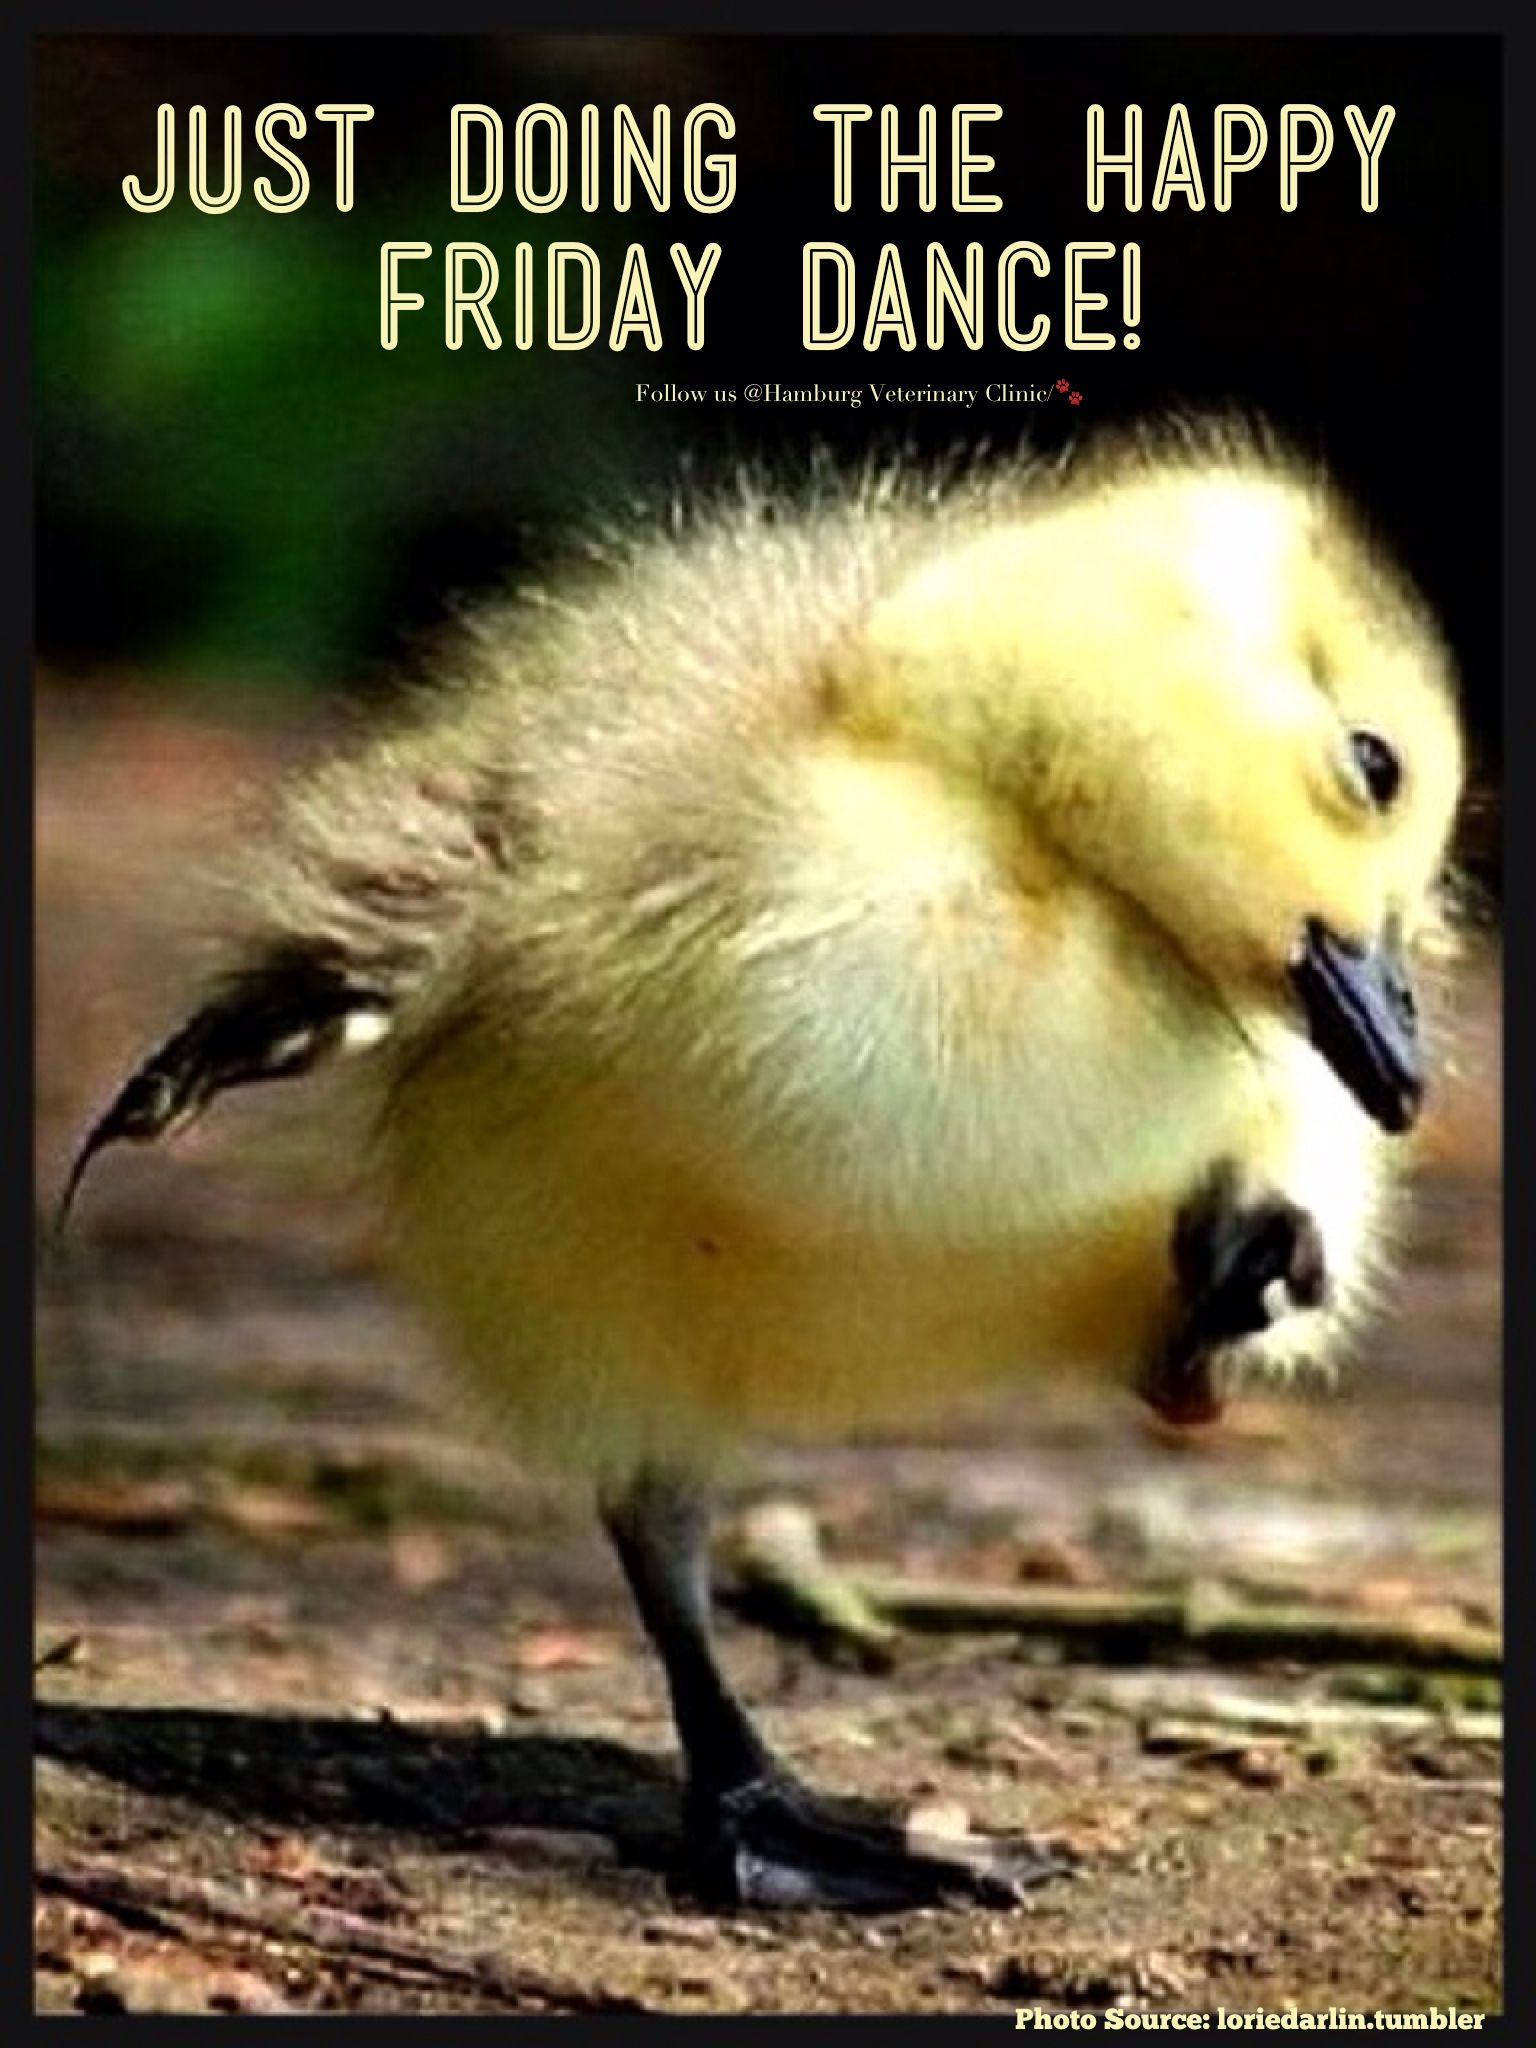 Friday Is Here Happiness Animal Humor Cute Duckling Celebrate Dance Weekend Almost Here Just Doi Happy Friday Dance Friday Dance Its Friday Quotes